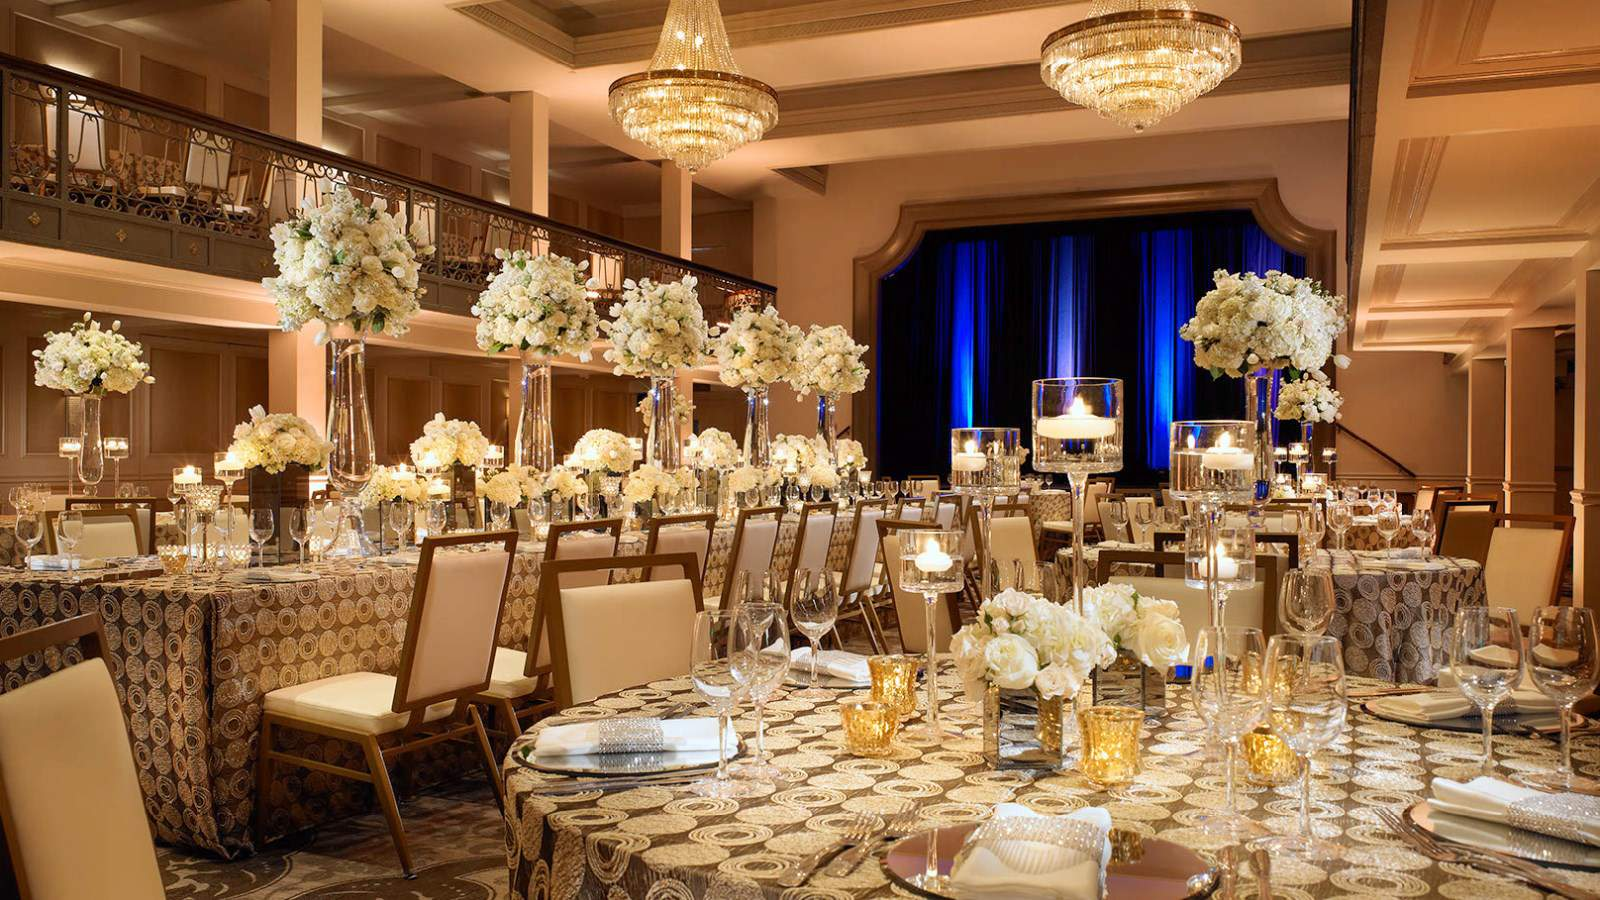 Historic glamorous san antonio wedding venue st san antonio wedding venues anacacho ballroom junglespirit Image collections